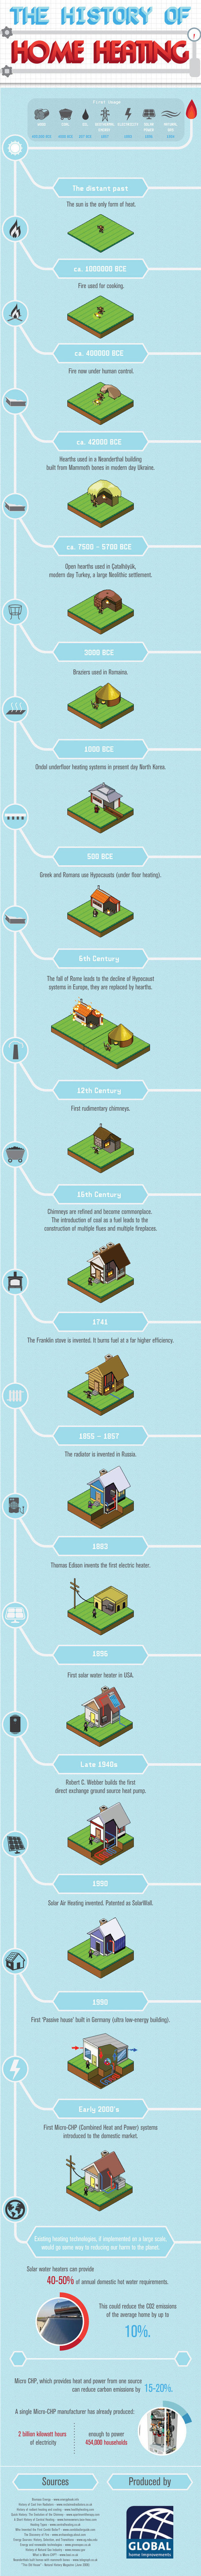 The History of Home Heating [Infographic] | Infographics ideas for Education | Scoop.it